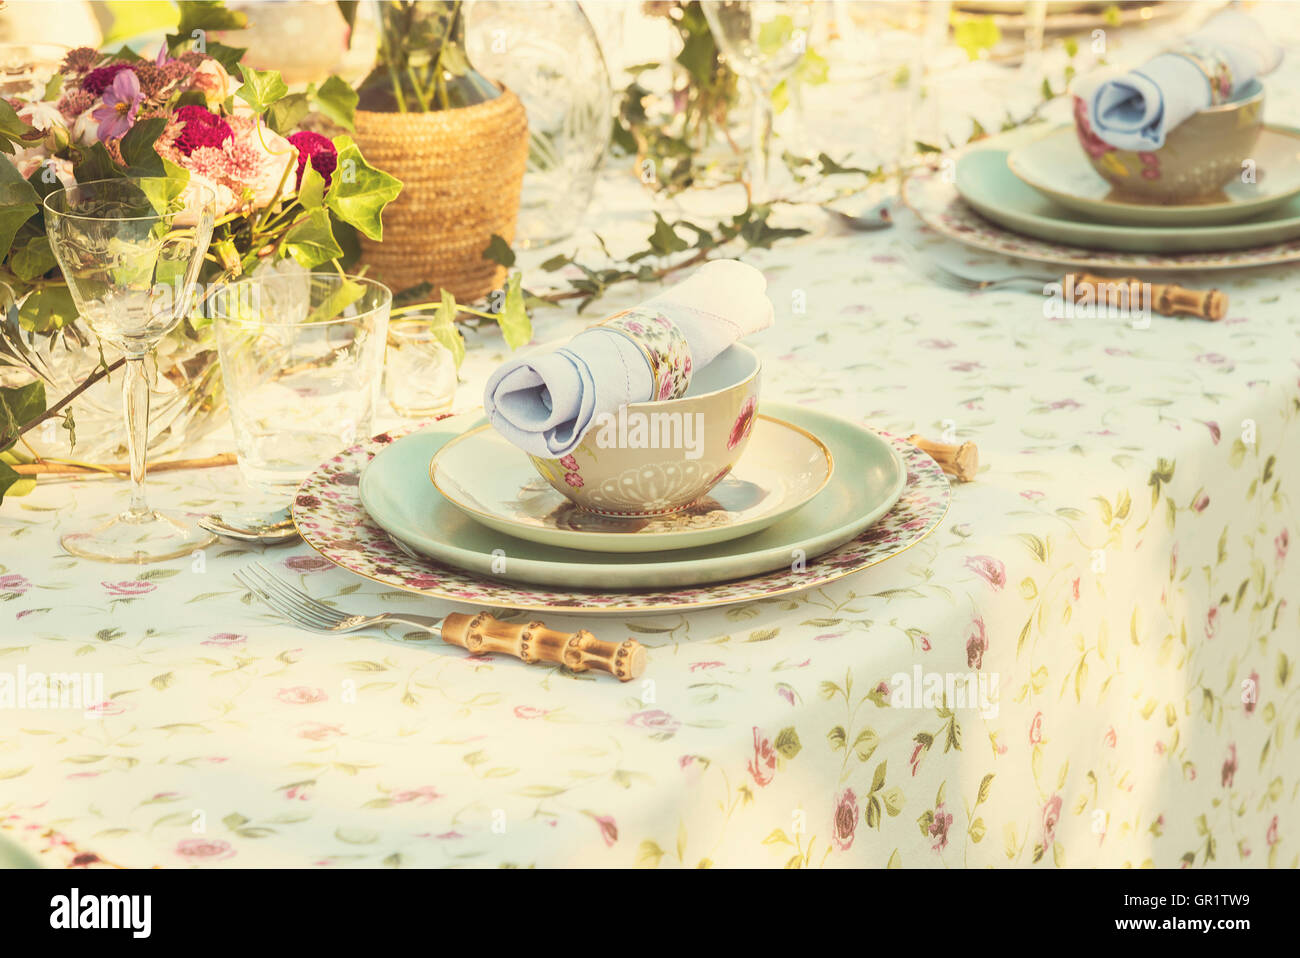 Image of table setting for wedding or garden party. - Stock Image